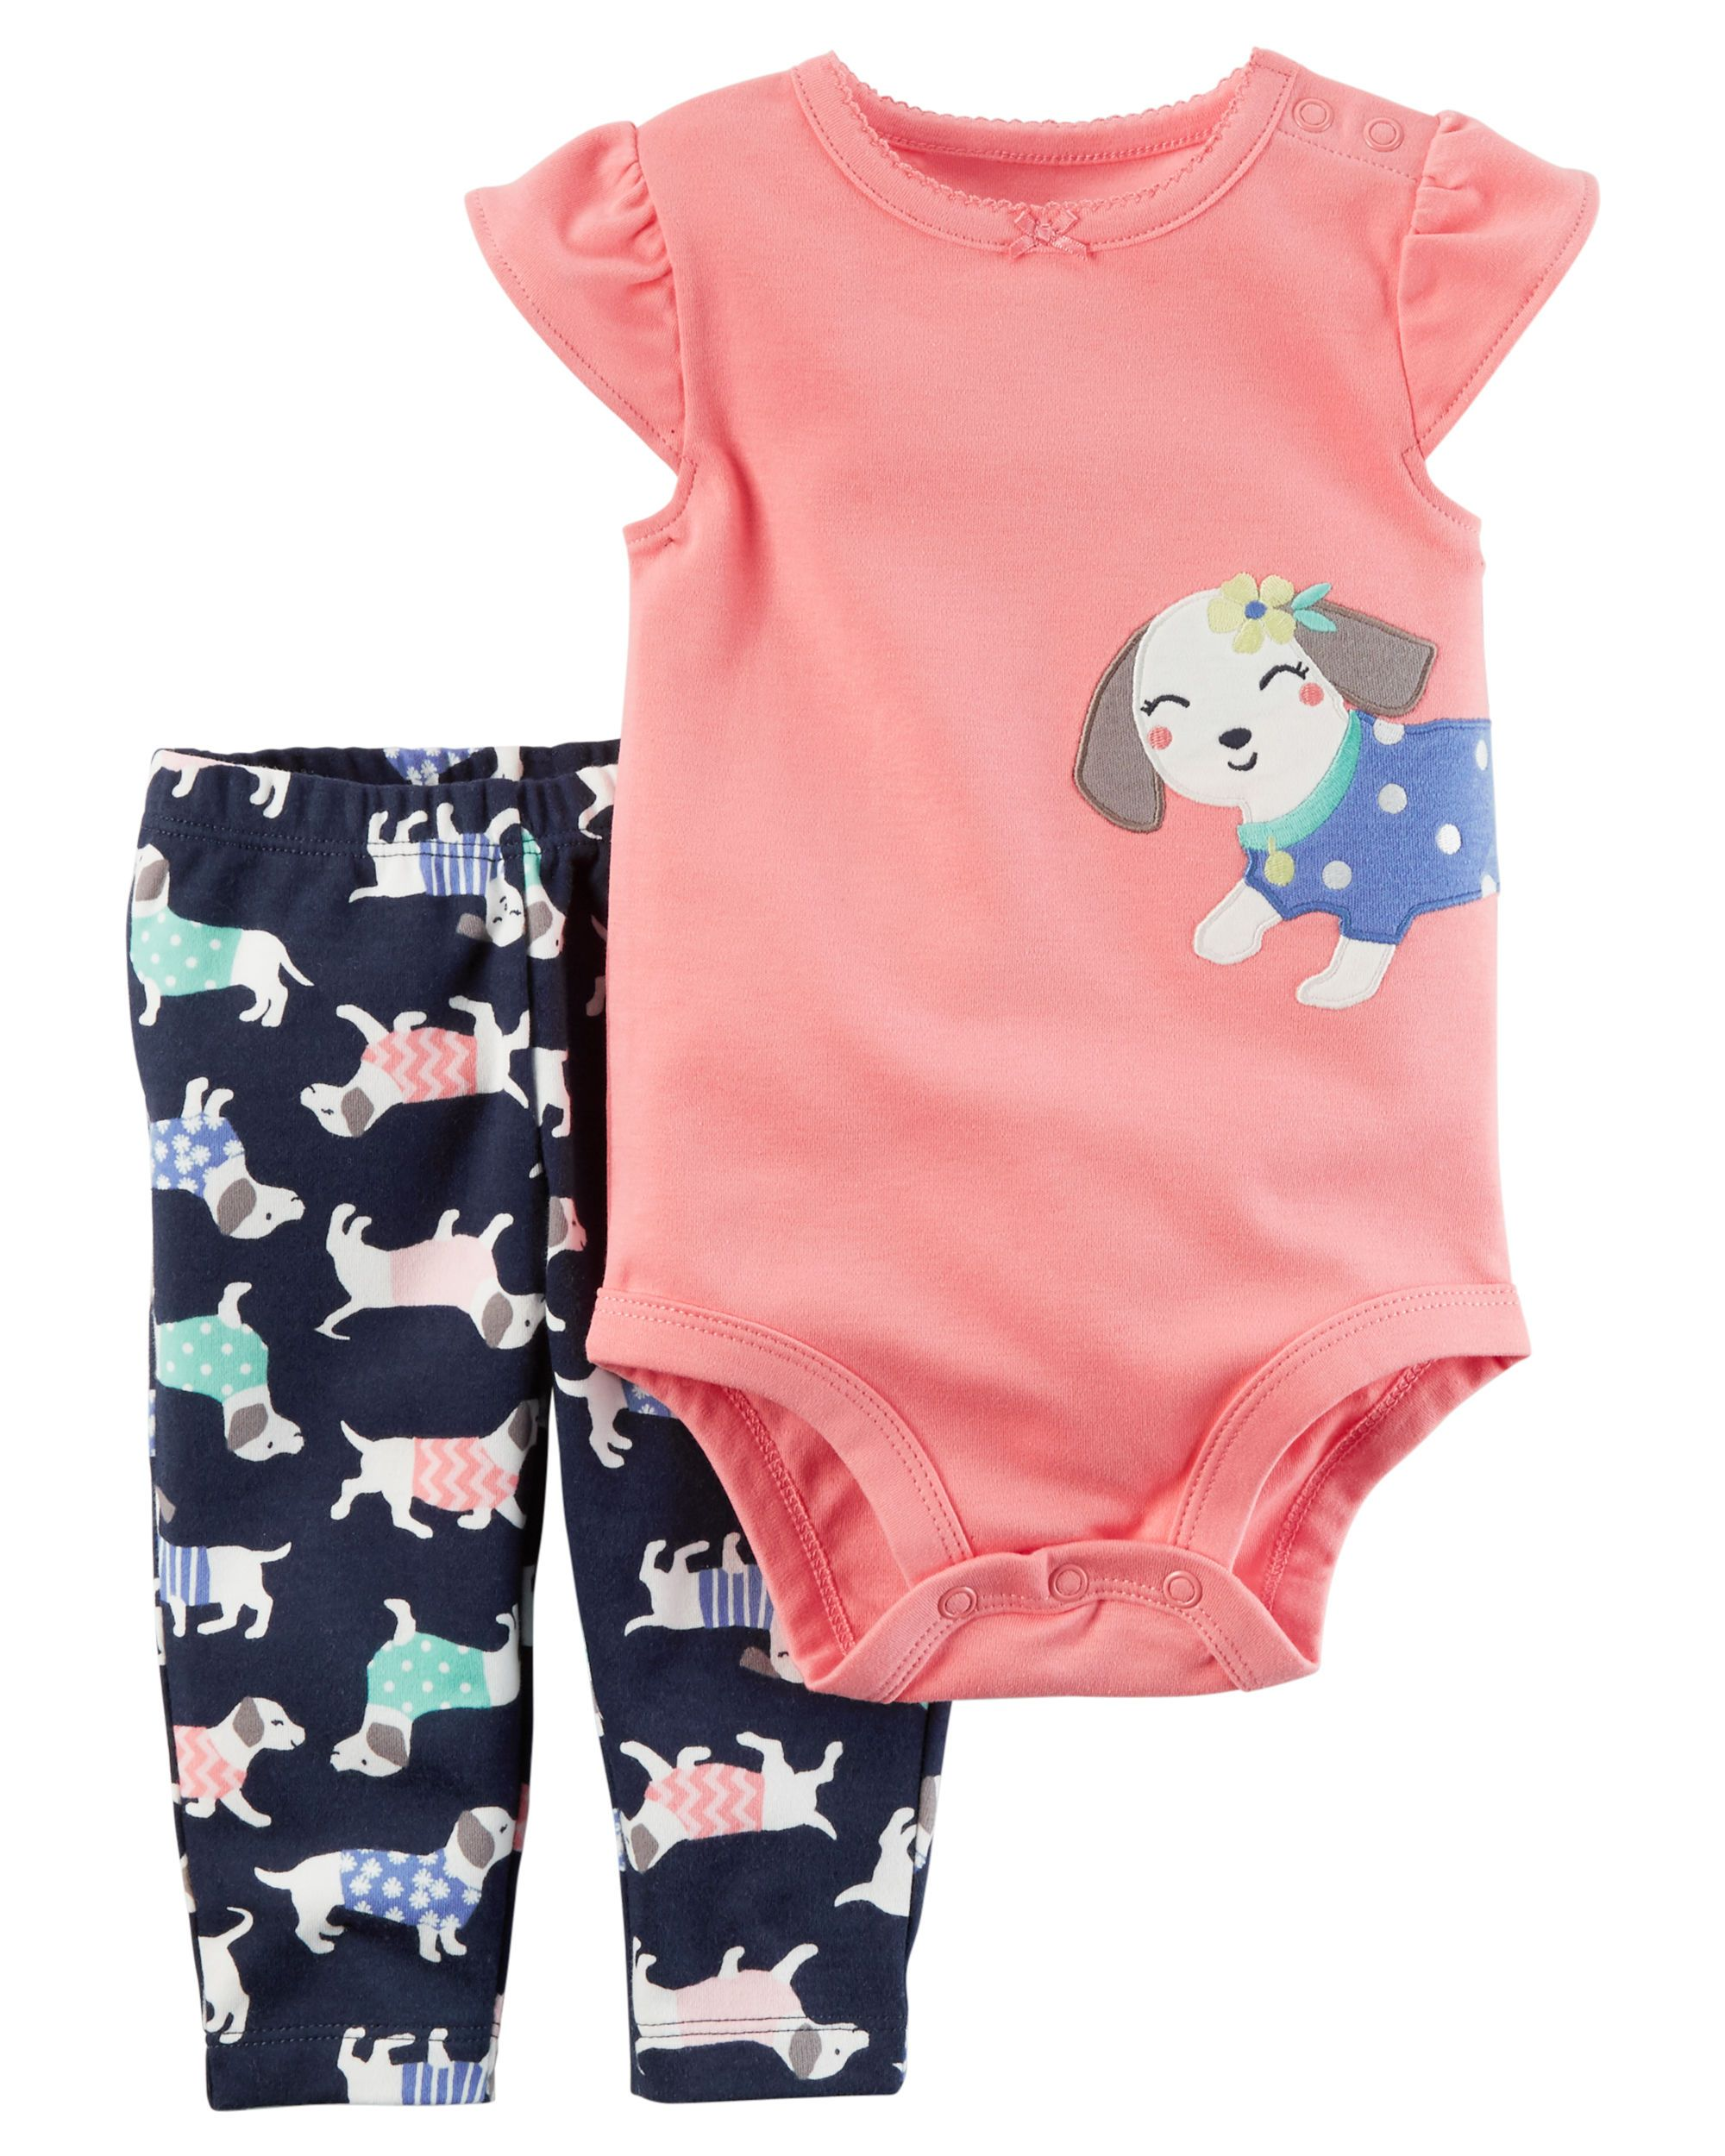 Minnie Mouse Cute 2 Piece Outfit Legging Dress 3-9 Month Toddler Baby Clothing